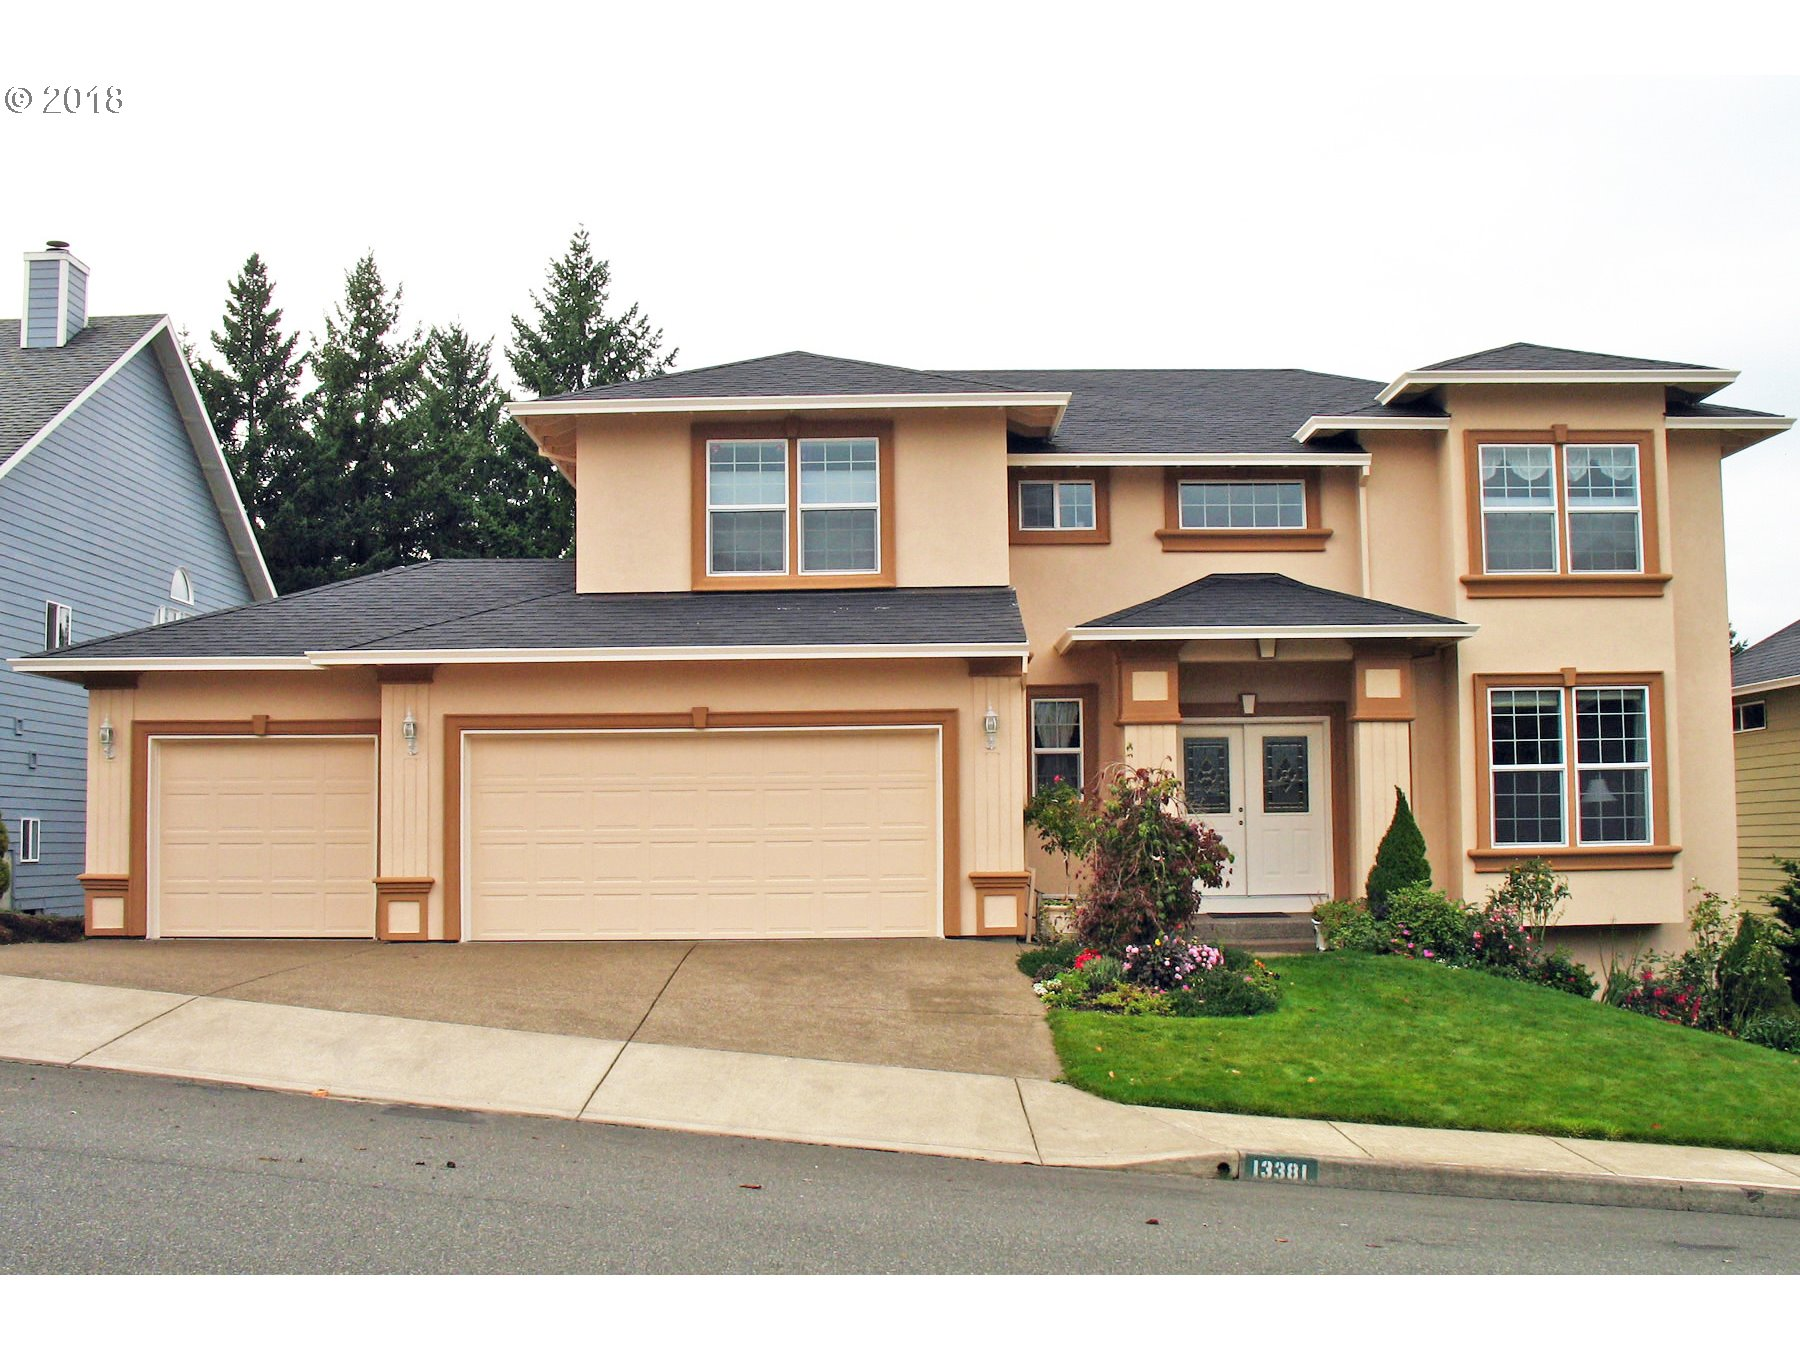 Quiet Bull Mountain neighborhood with sweeping vistas of 5 snow-capped mountains & protected urban forests.Easy access to Progress Ridge shopping & entertainment. 5 bedrooms+2 bonus rooms+Office/Den. Kitchen w/Maple Floors, Cook Island, Granite & eat area. Great room concept w/fireplace & views of the green space. Great natural light w/lots of windows. King-size master suite w/5 piece bath & mountain views. Lots of storage.